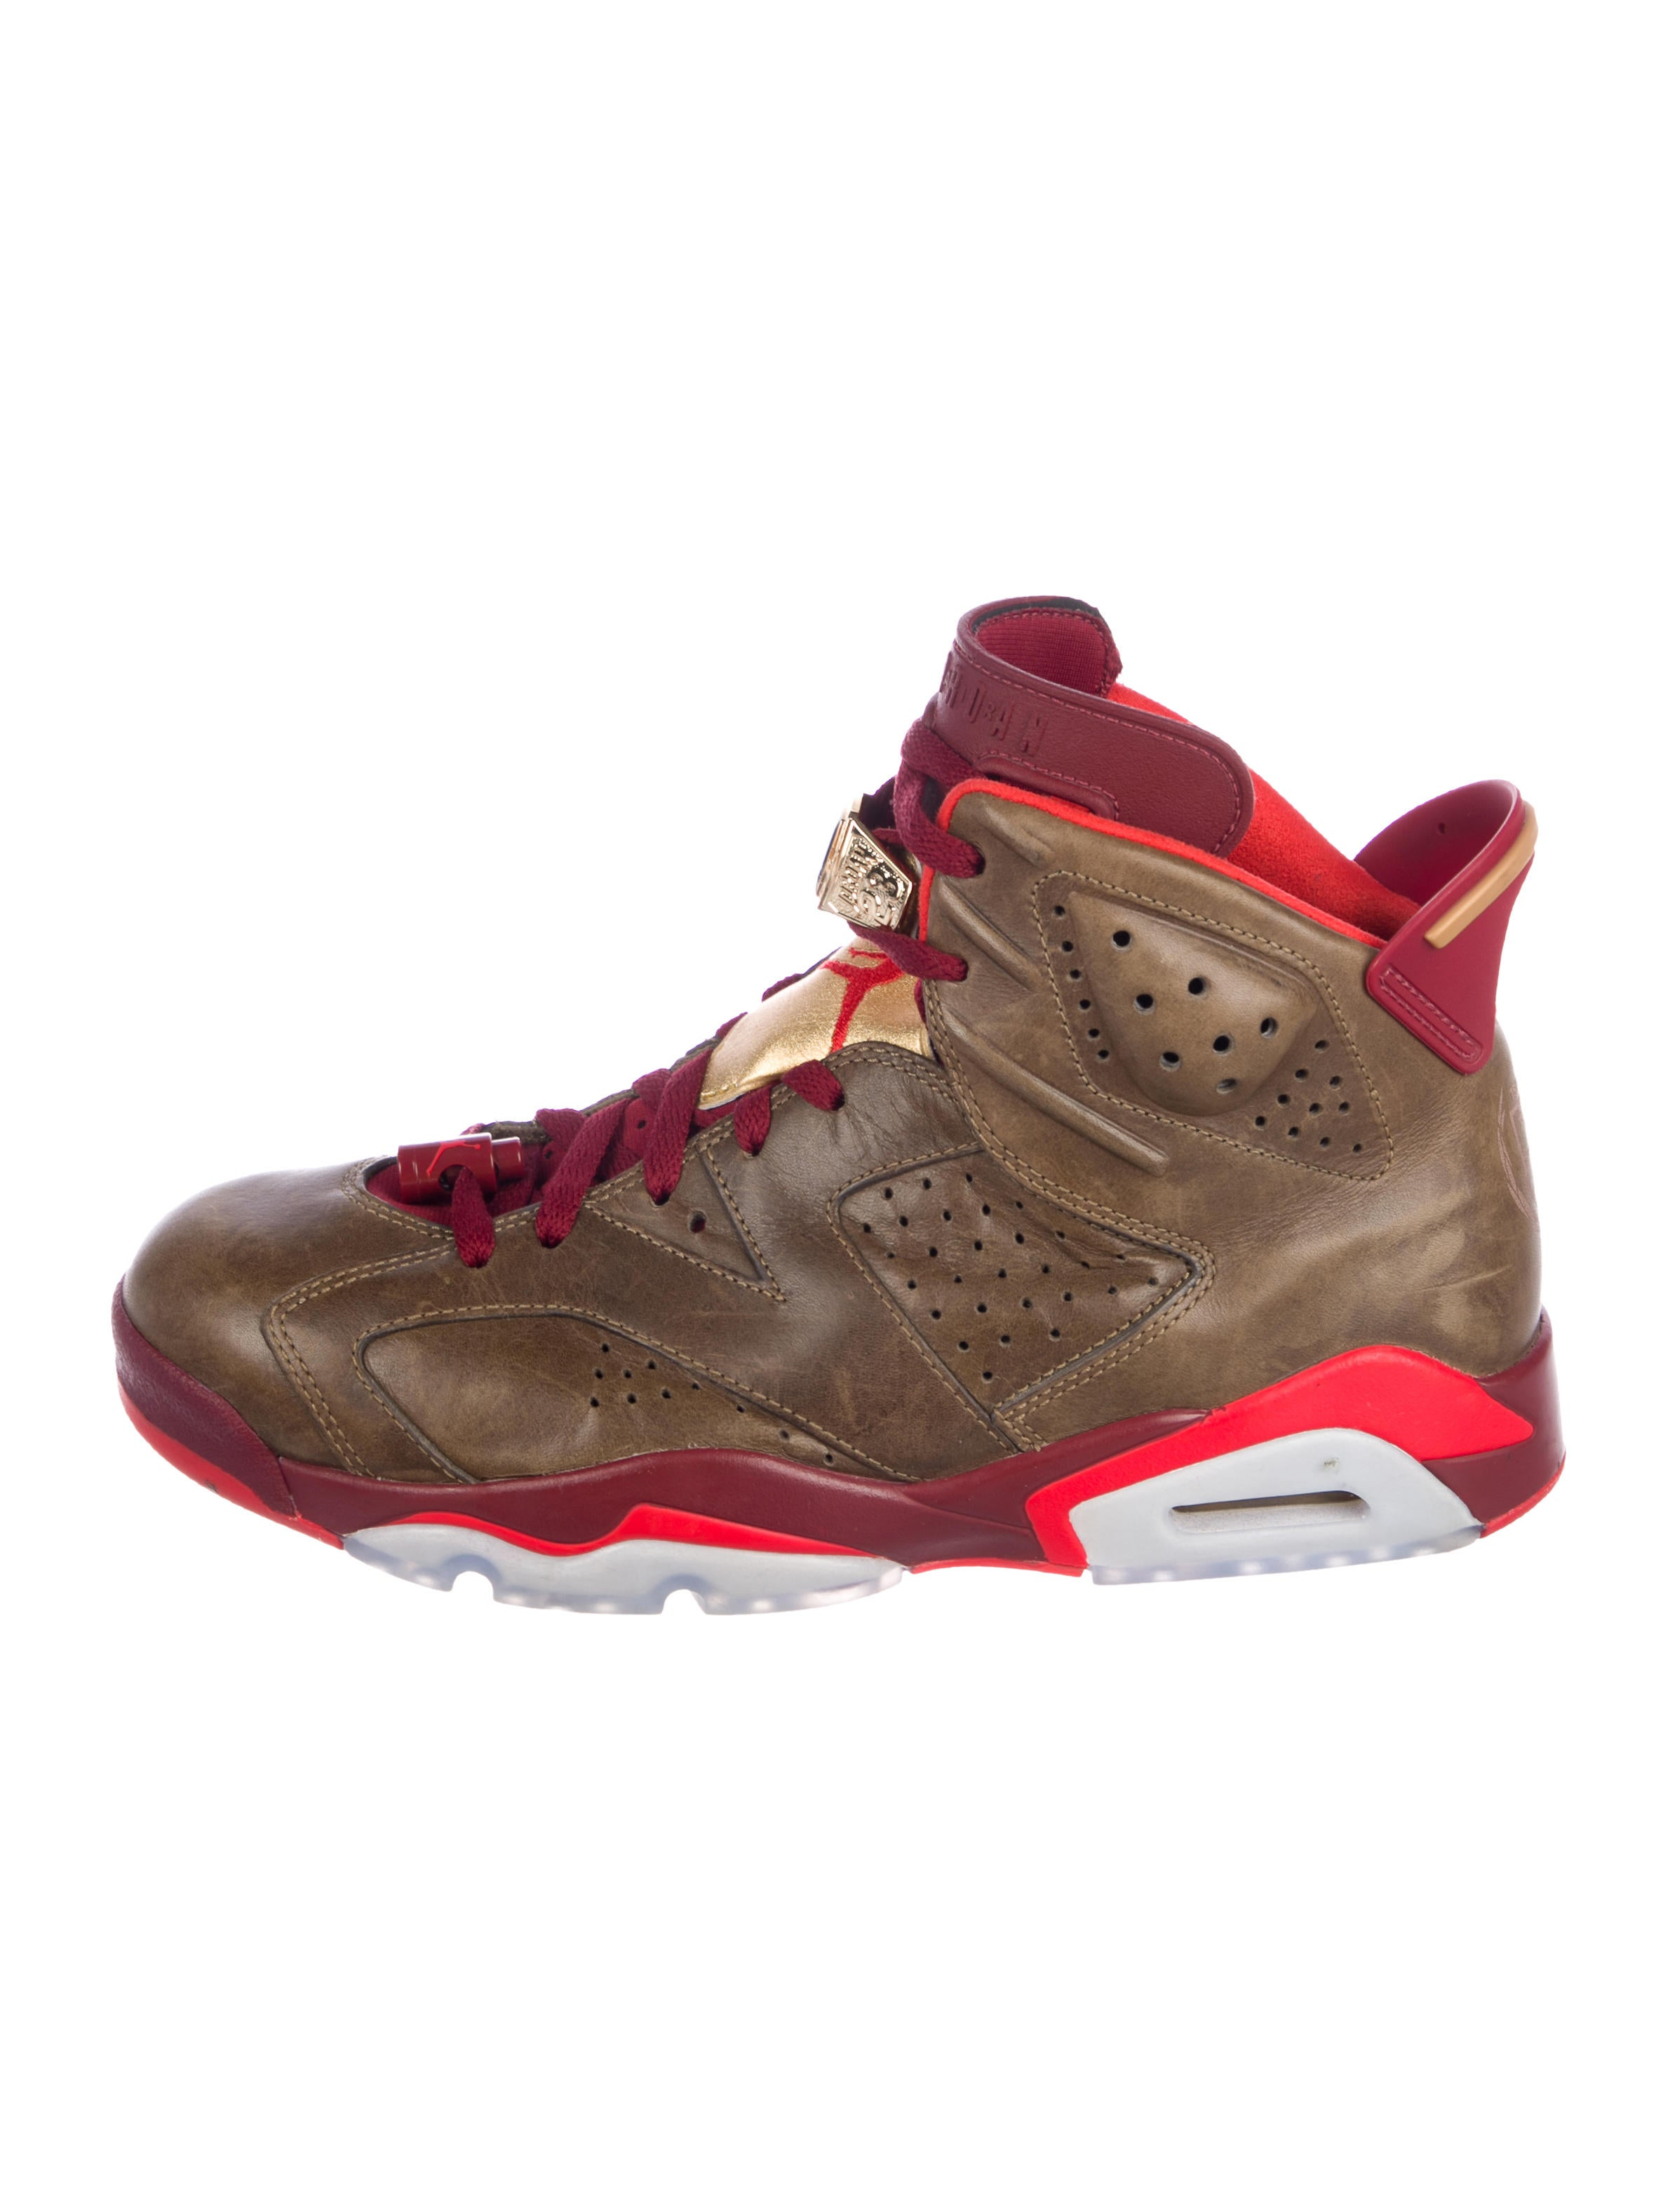 outlet store 60f34 61f12 Jordan 6 Retro Cigar Sneakers - Shoes - WJORA20144   The RealReal